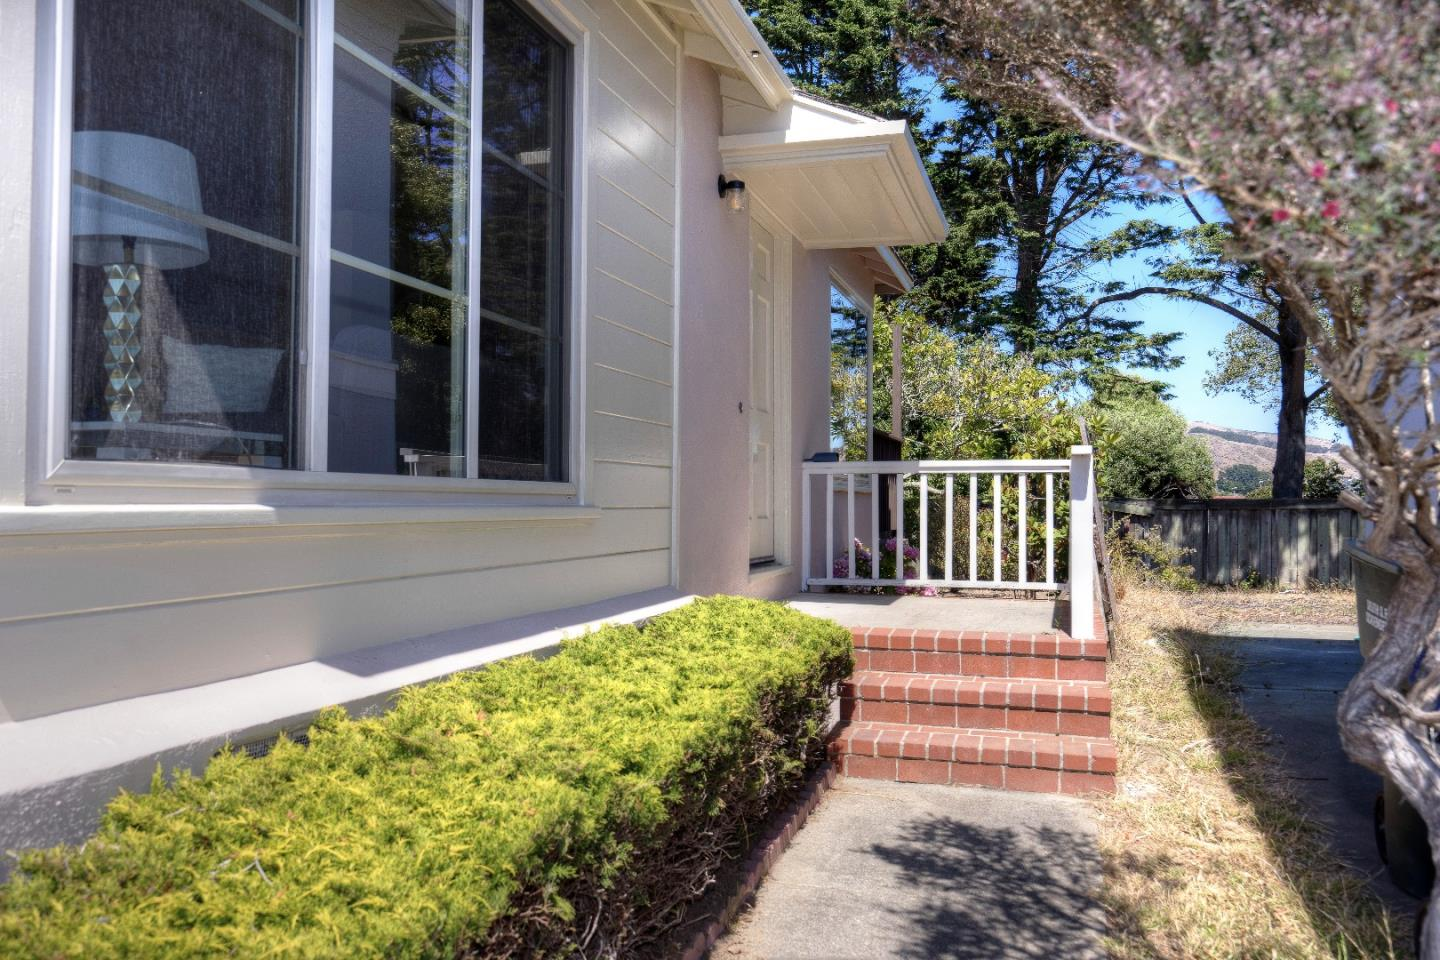 Additional photo for property listing at 25 Conrad Court  South San Francisco, California 94080 Estados Unidos